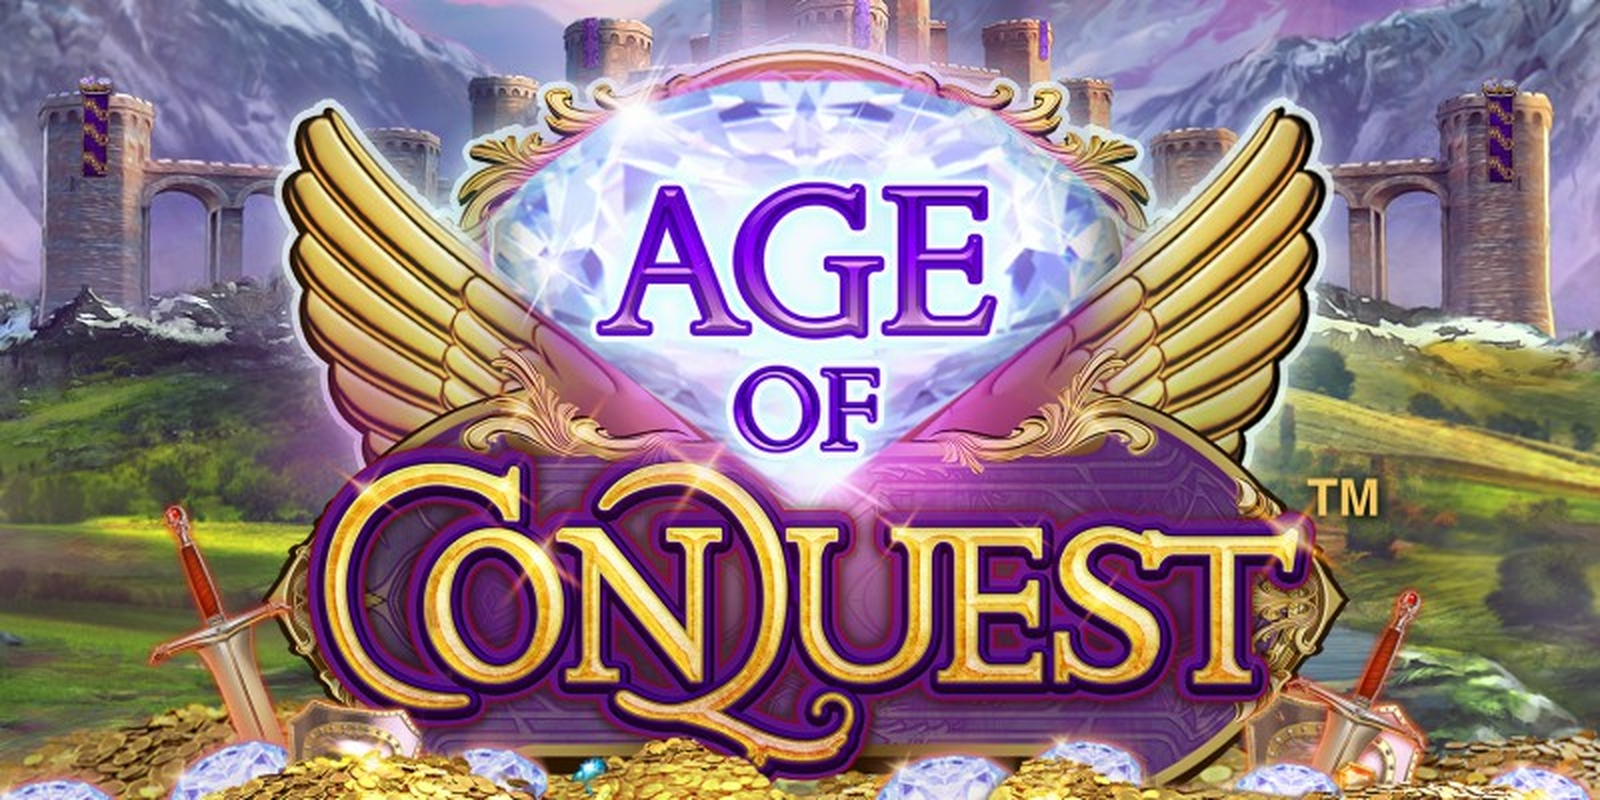 The Age of Conquest Online Slot Demo Game by Neon Valley Studios